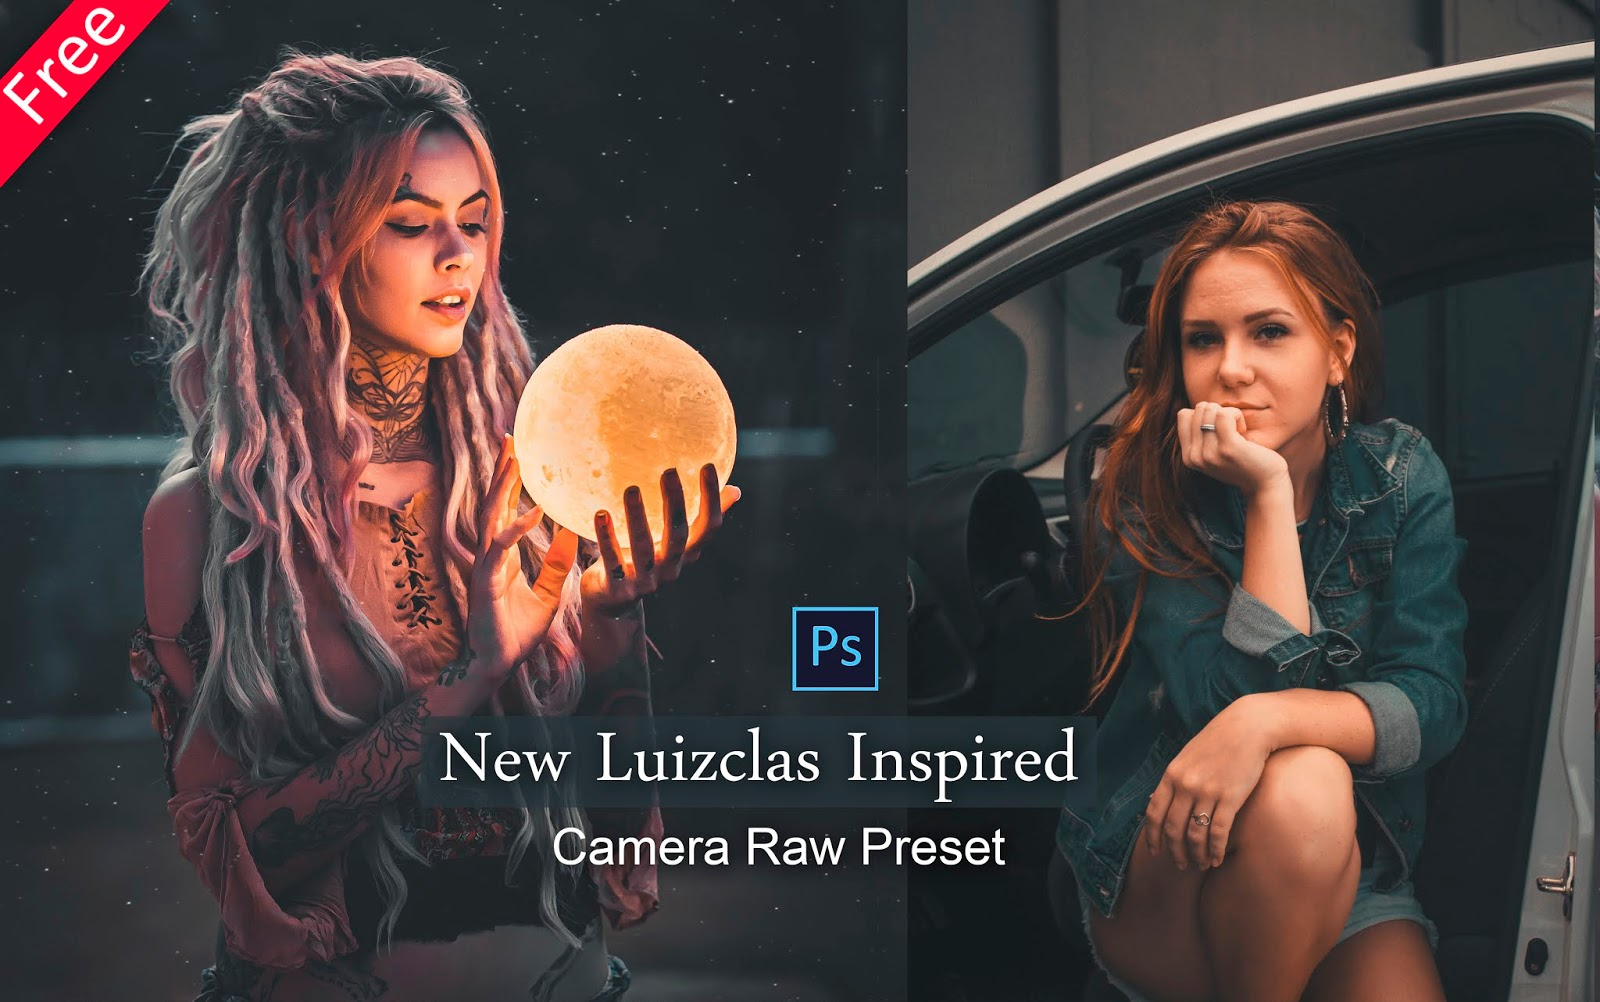 Download Luizclas Inspired Camera Raw Preset for Free | How to Edit Photos Like Luizclas in Photoshop